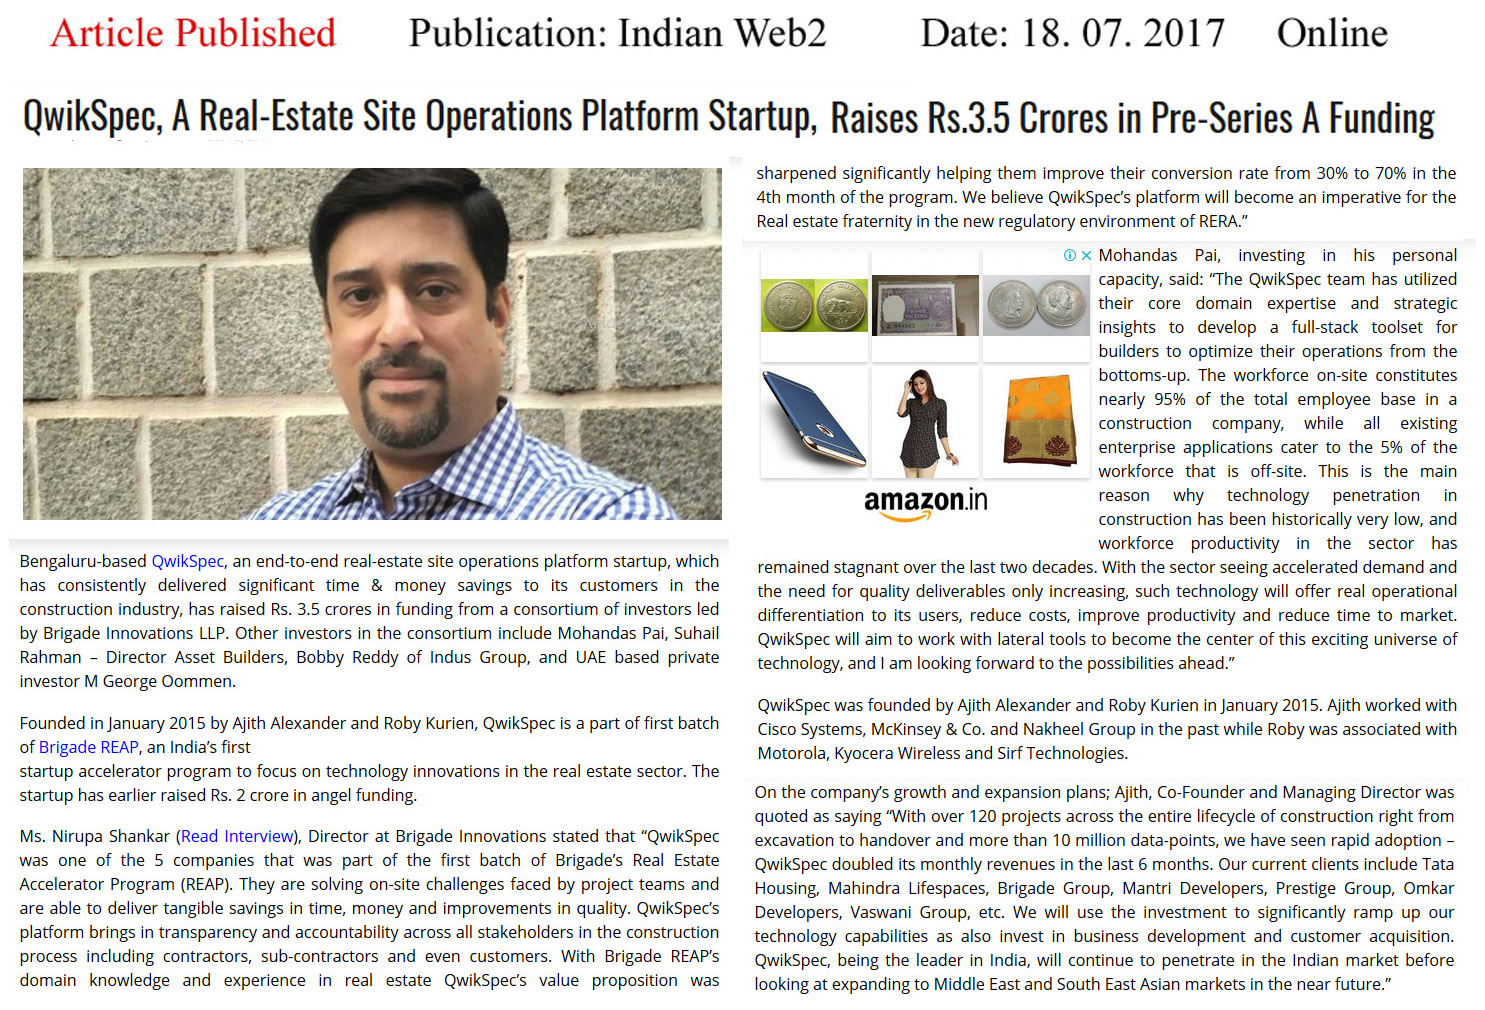 QwikSpec, part of the first batch of Brigade REAP, raises Rs. 3.5 crores in Pre-Series A funding—Indianweb2 Online Brigade Qwickspec